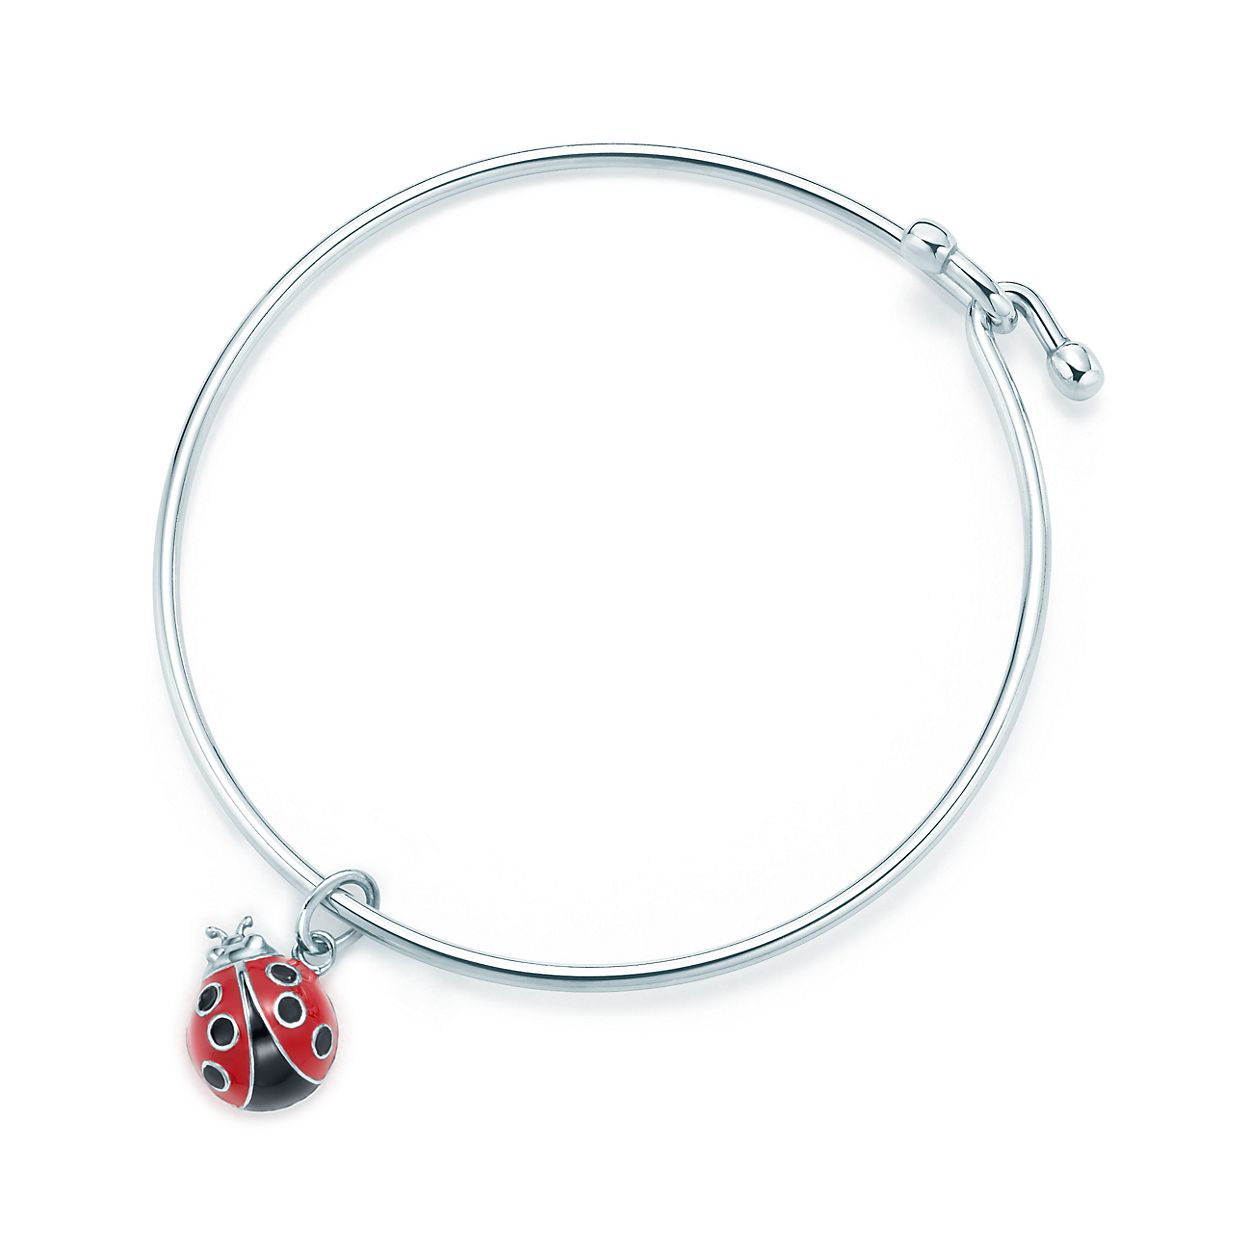 Ladybug charm in sterling silver with enamel finish on a wire ...